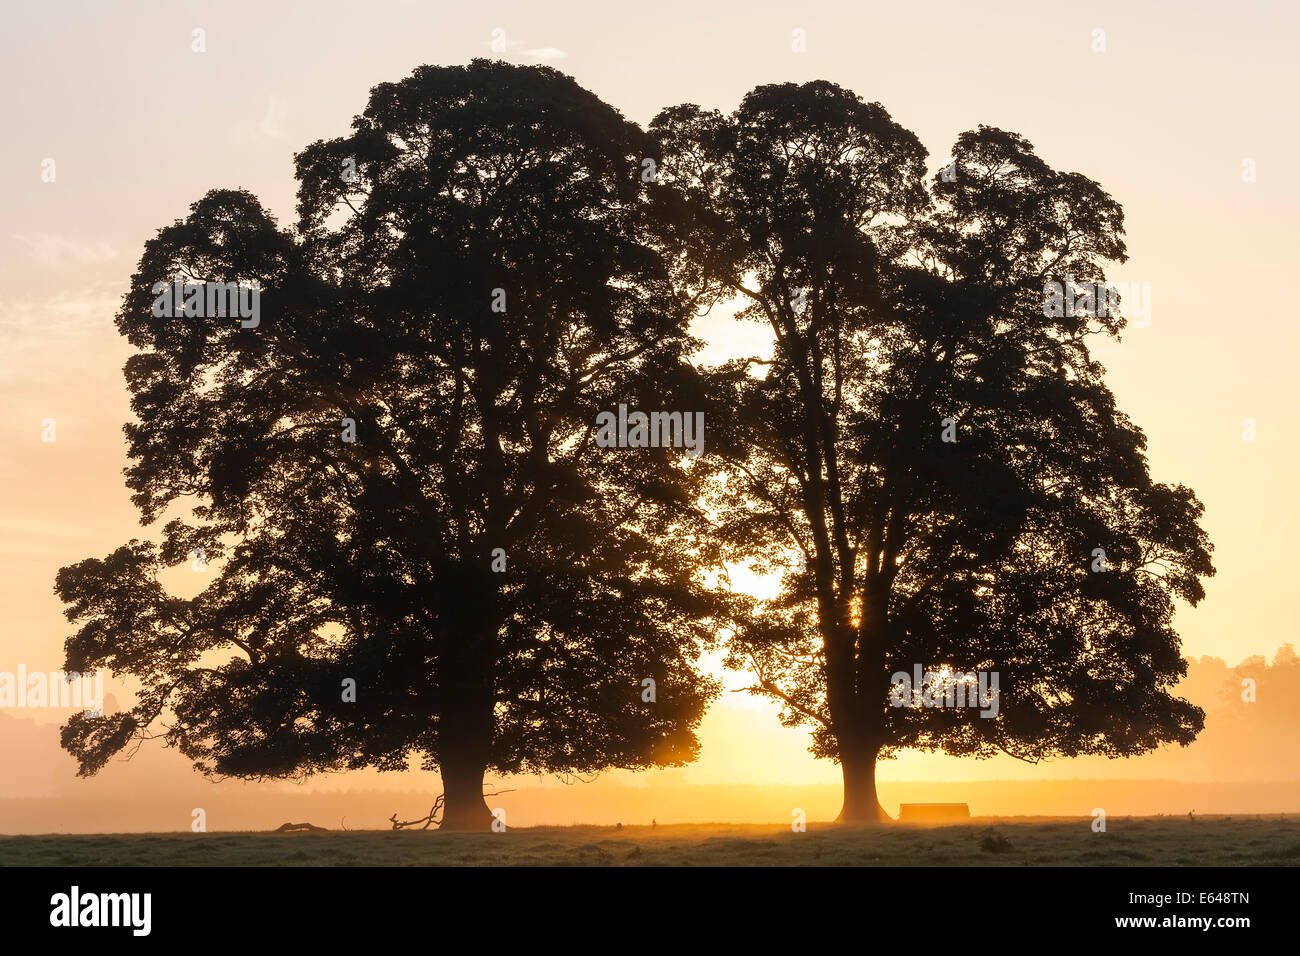 Sunrise, Usk Valley, South Wales, UK - Stock Image